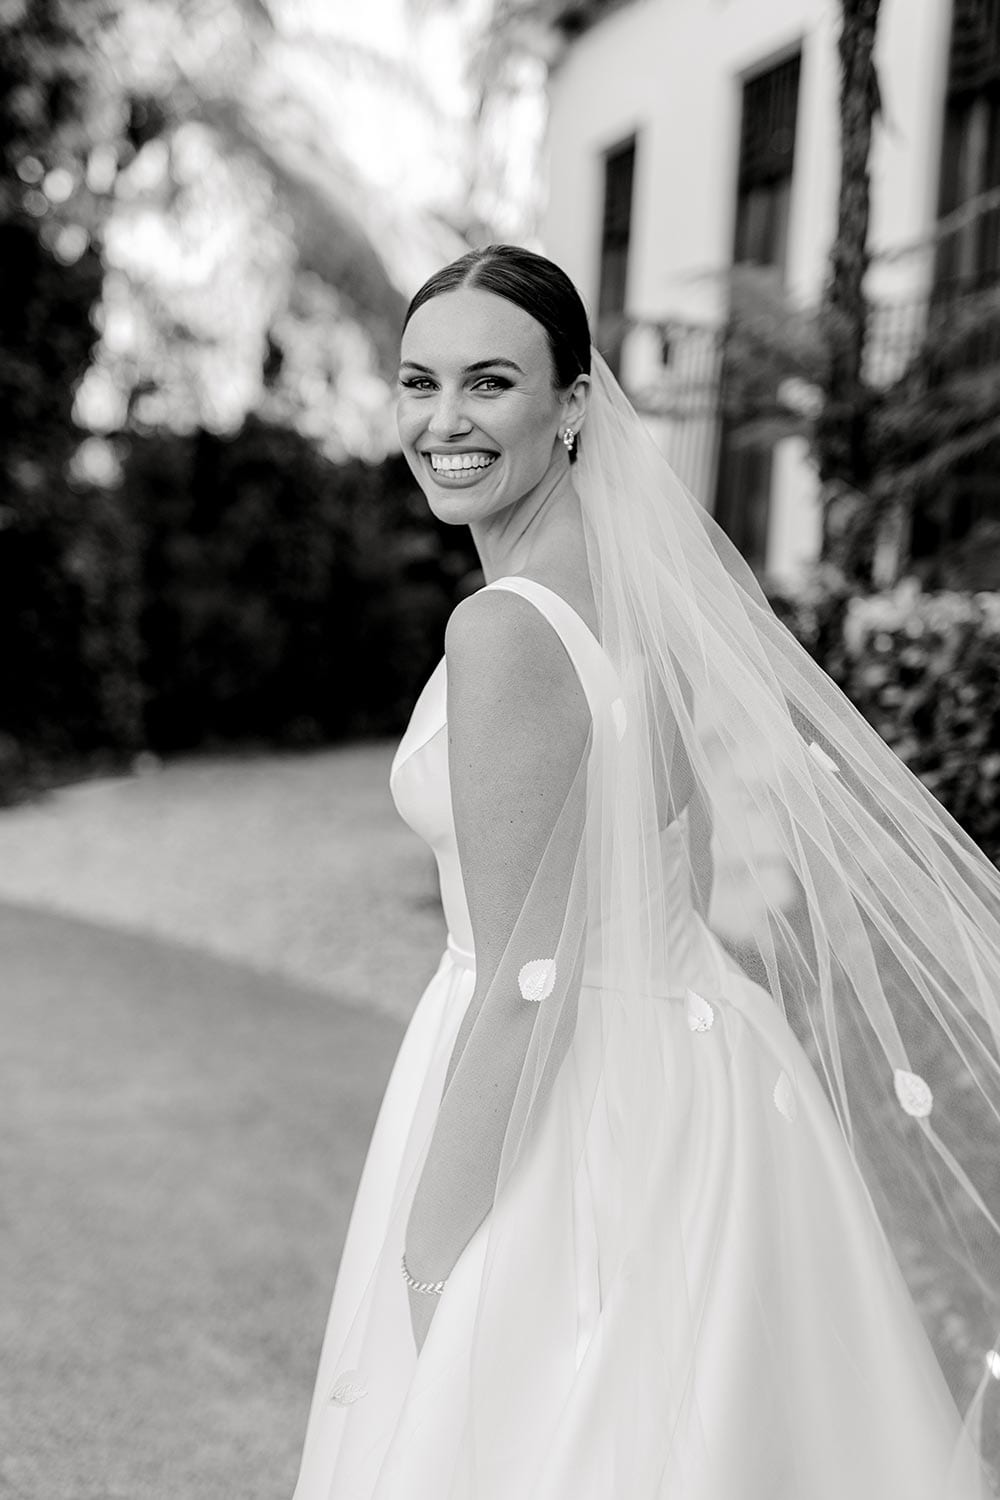 Madison Wedding Dress from Vinka Design. Classic Mikado satin wedding dress. Structured bodice with deep V-neckline & low back. Side pockets in the skirt give fun & versatility, with a sweeping train. View of gown from the side. Photographed outdoors. In Black & White.